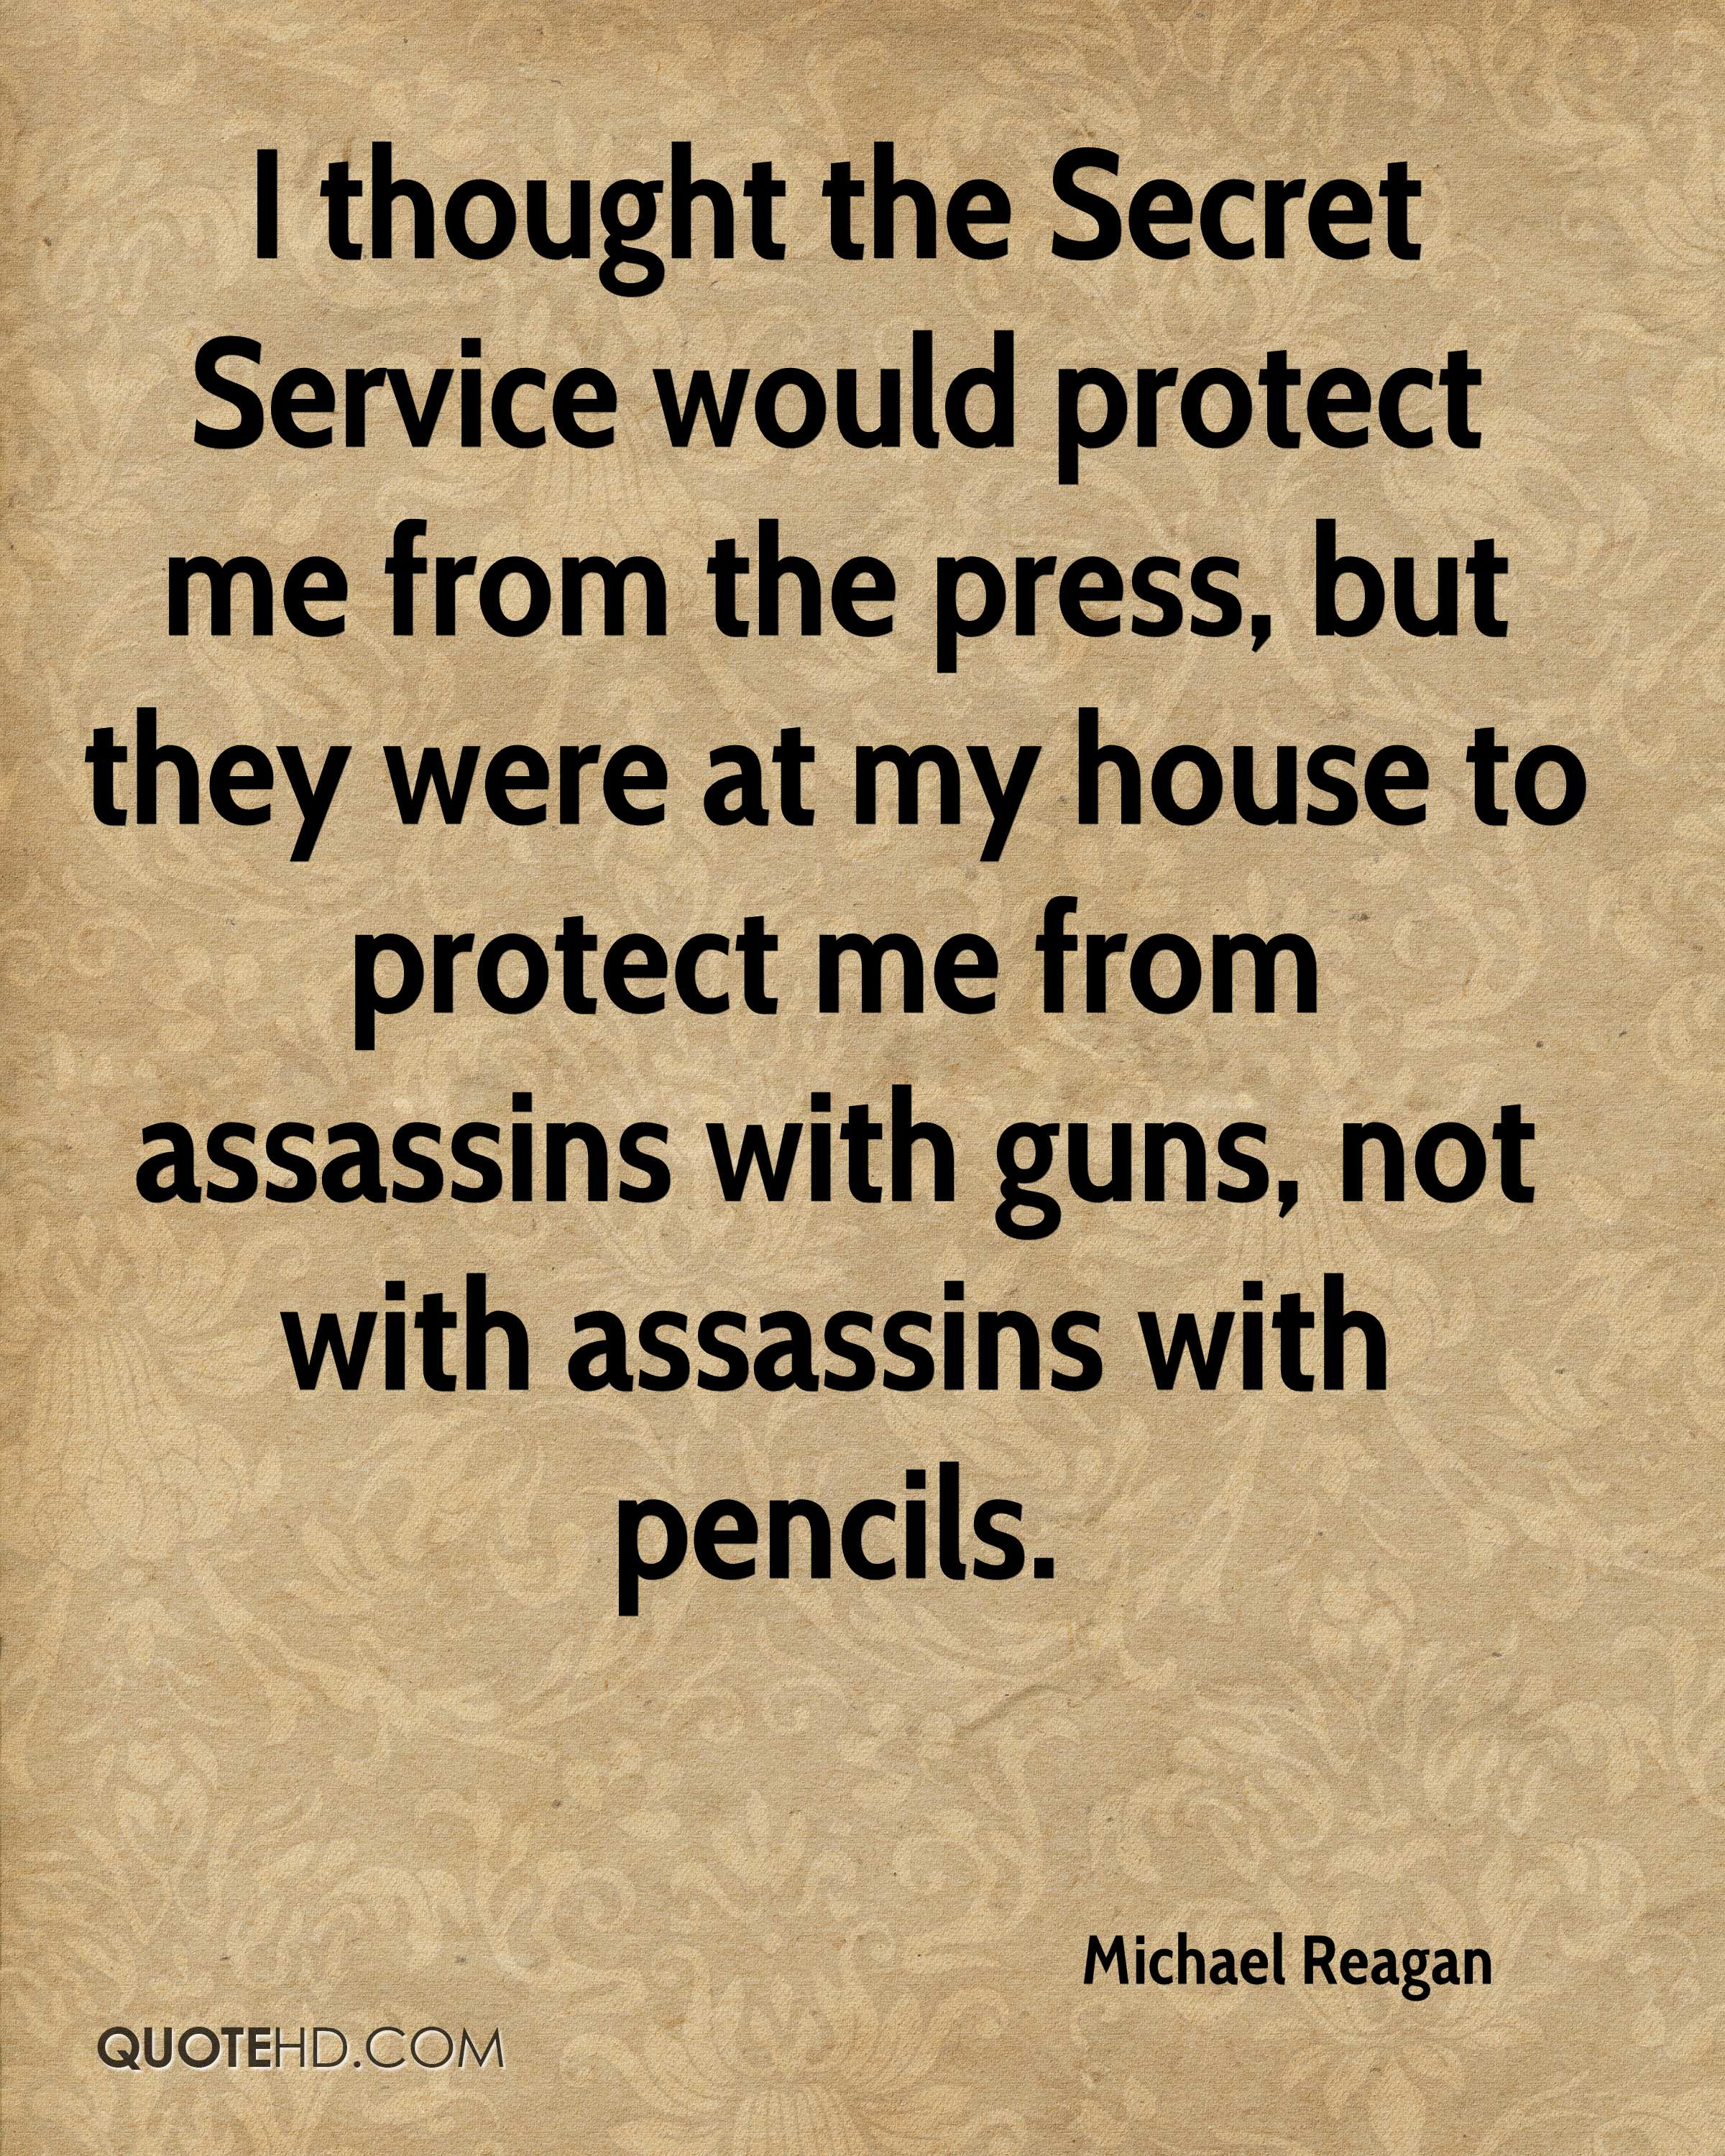 I thought the Secret Service would protect me from the press, but they were at my house to protect me from assassins with guns, not with assassins with pencils.